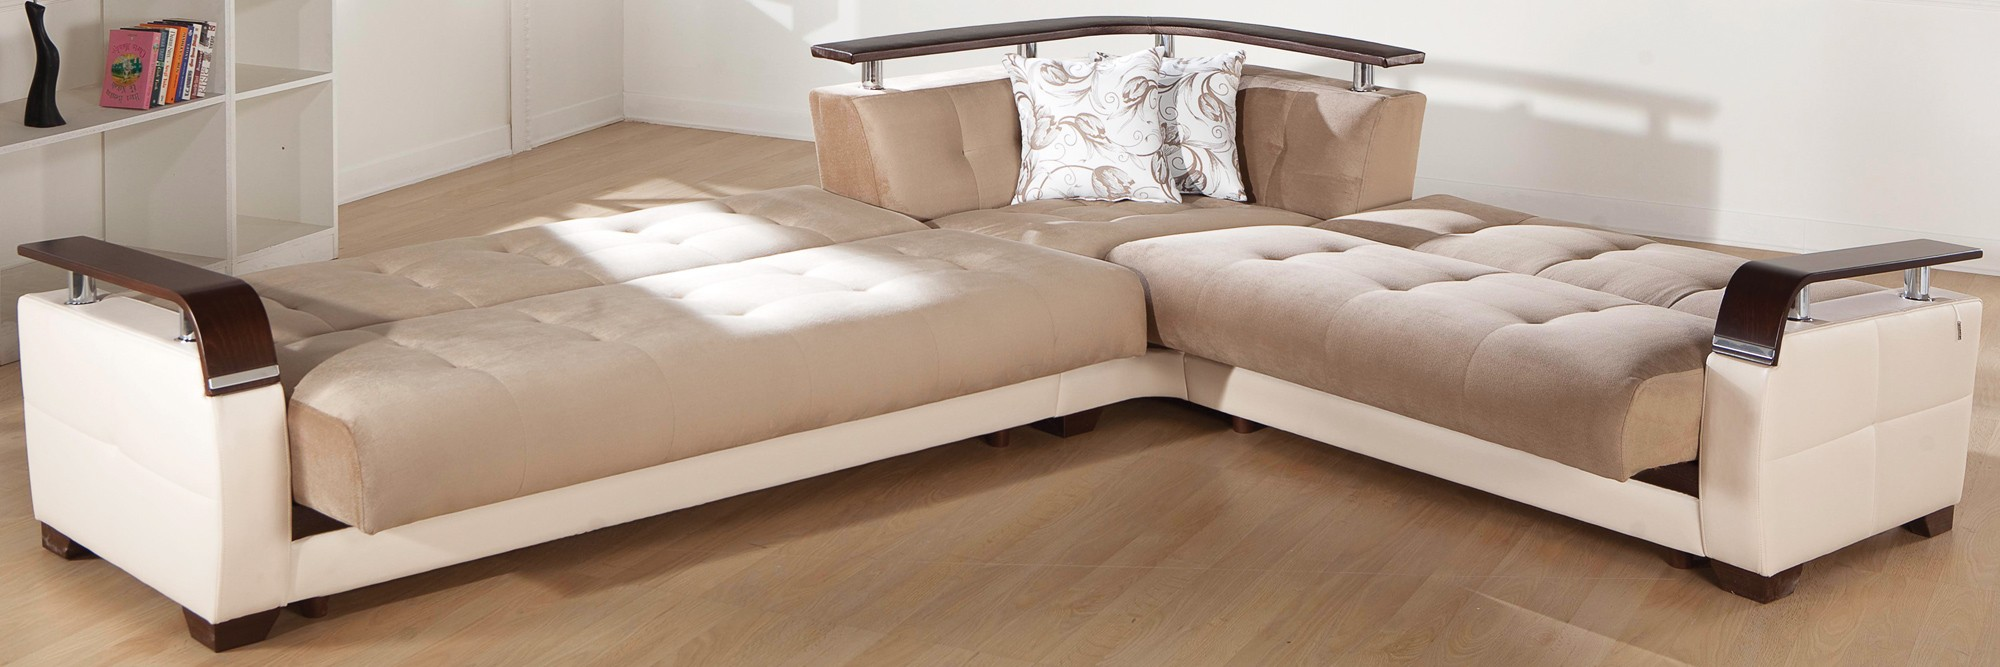 new sectional sofa sleeper 35 about remodel modern sofa inspiration with sectional ZJMOQJB